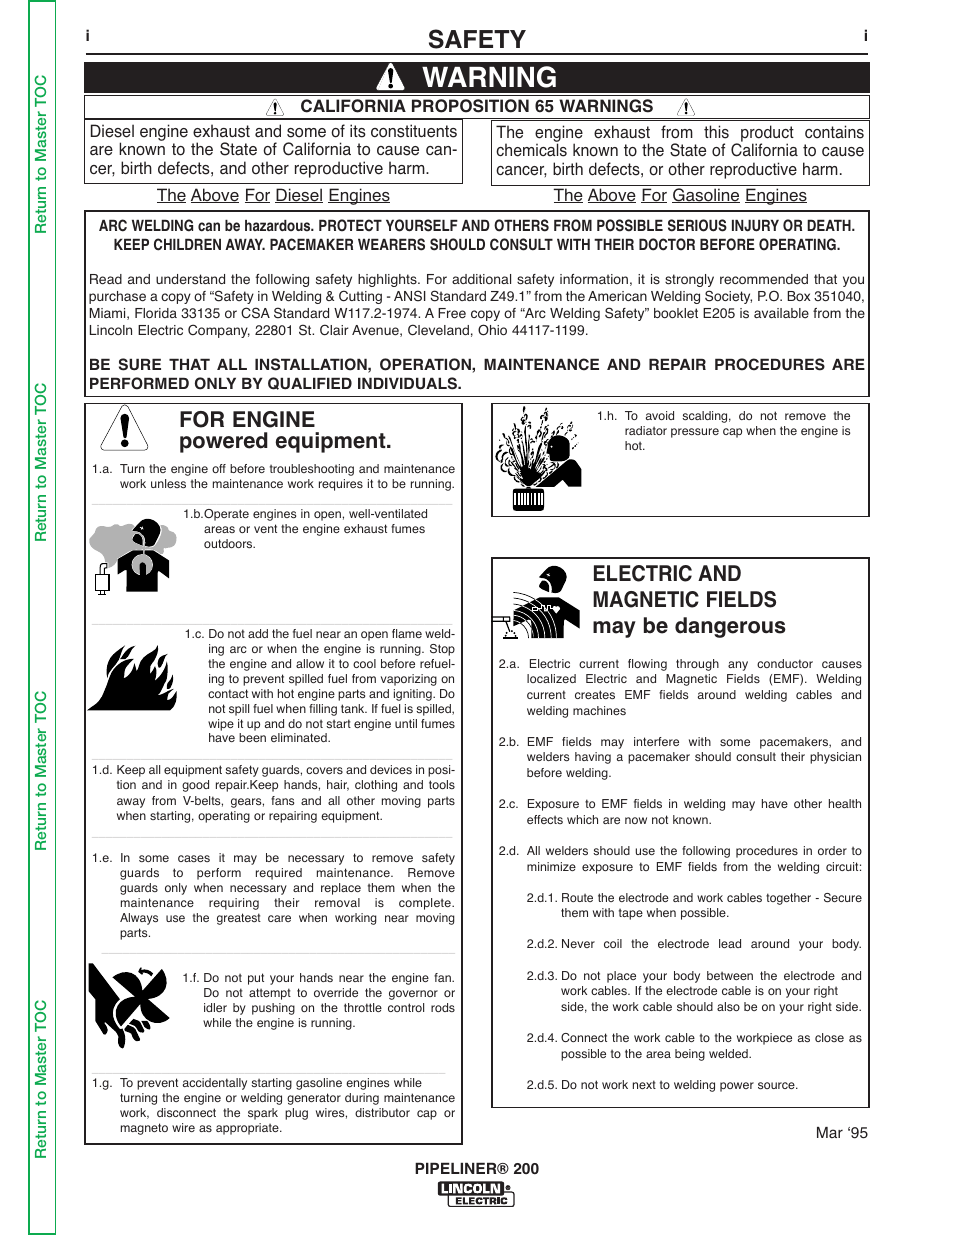 Safety, Info, Warning   Lincoln Electric PIPELINER 200 User Manual